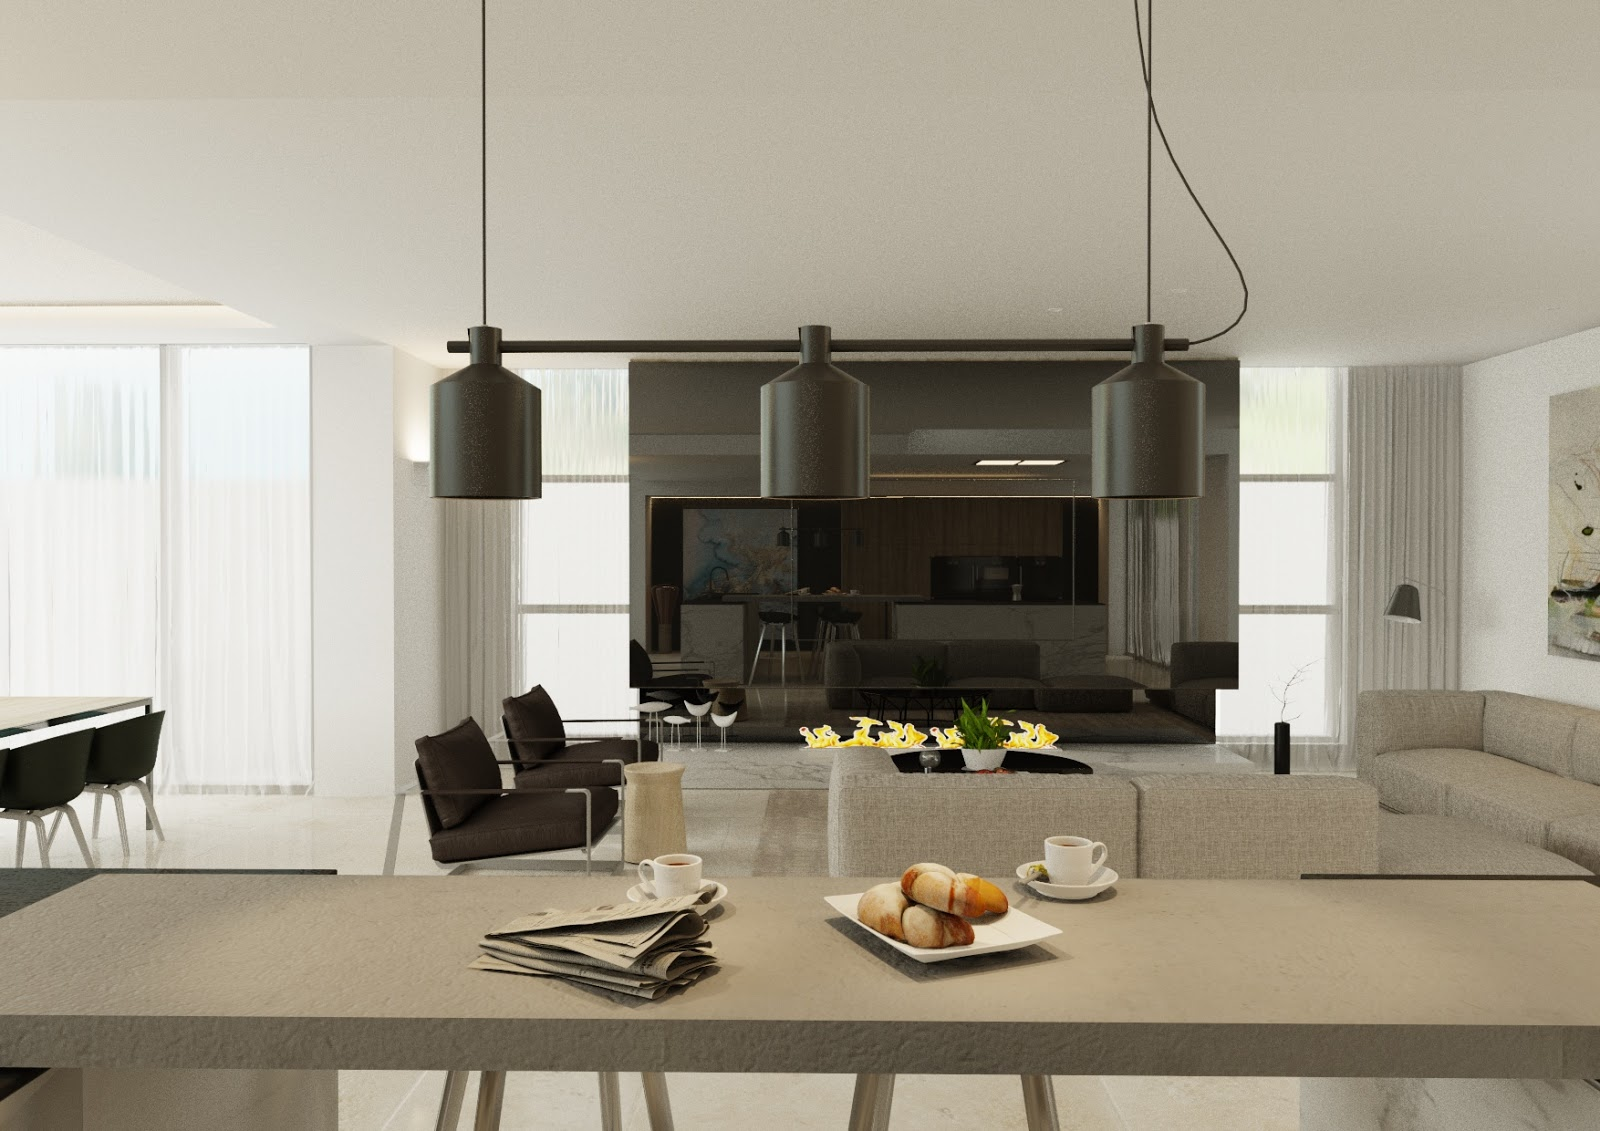 minosa design modern kitchen design requires contemporary approach small kitchen requires innovative approach designed kitchen